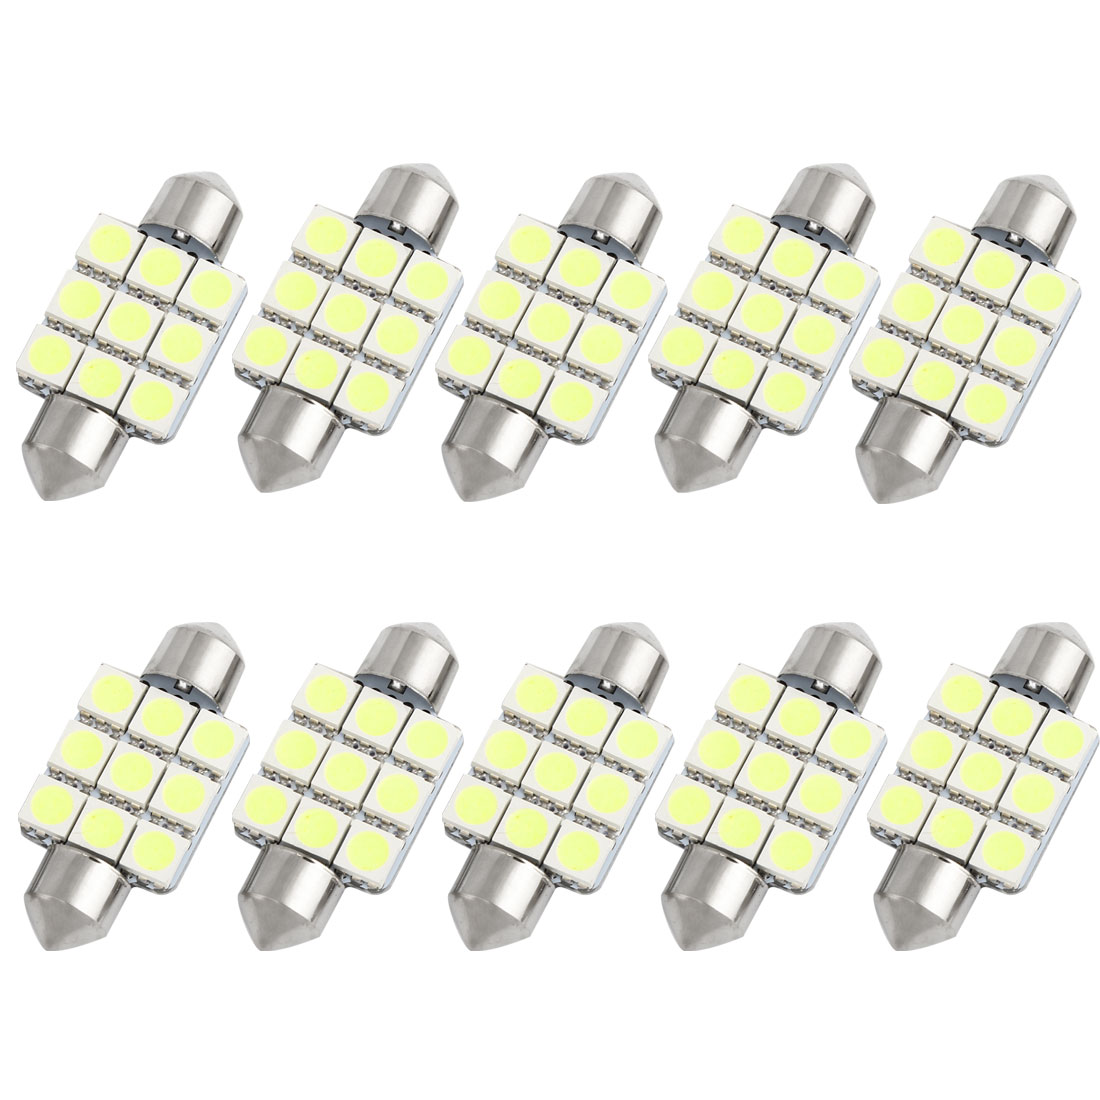 10pcs 36mm White 9 LED 5050 SMD Festoon Dome Light Lamp DE3423 DE3425 Internal